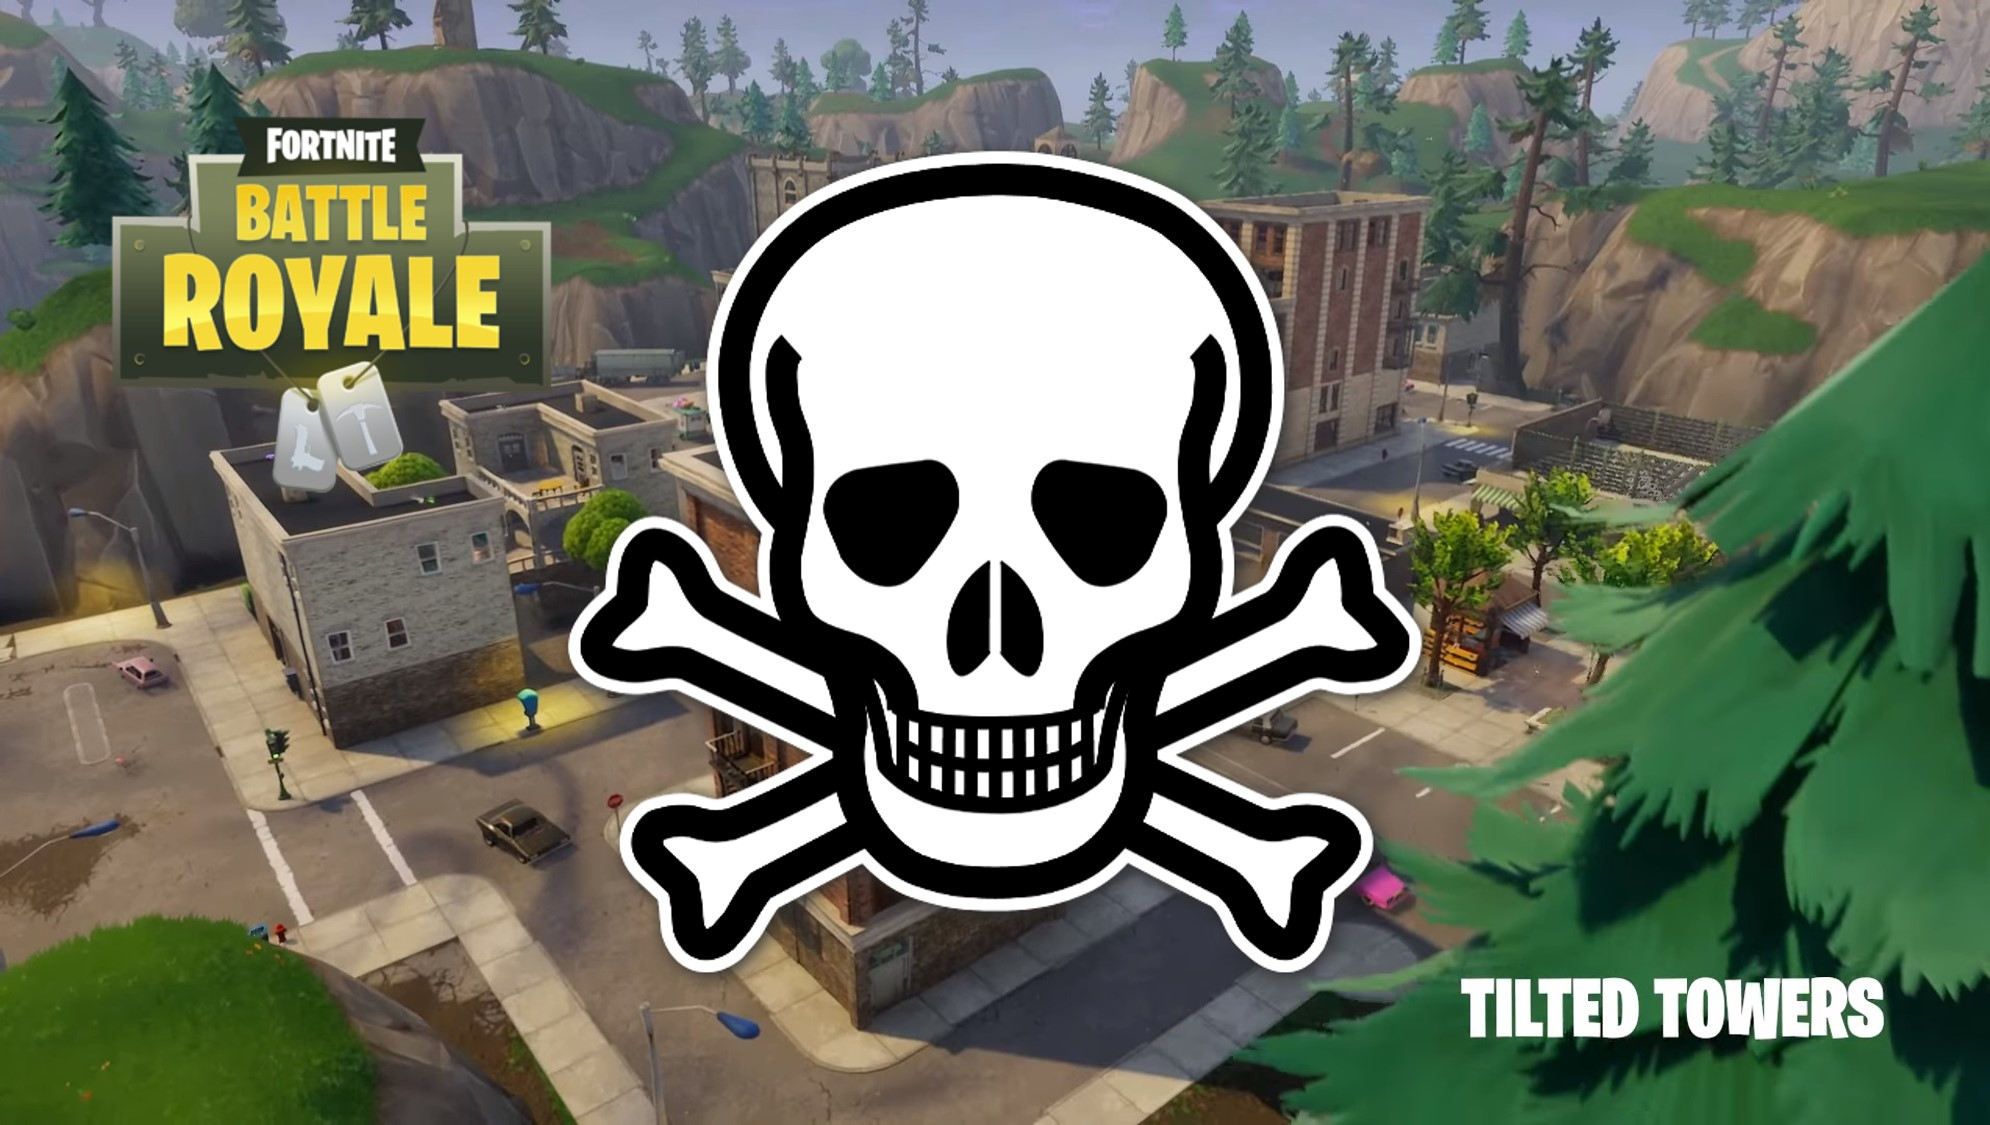 Fortnite: Battle Royale – Langweiliges Midgame dank Tilted Towers?